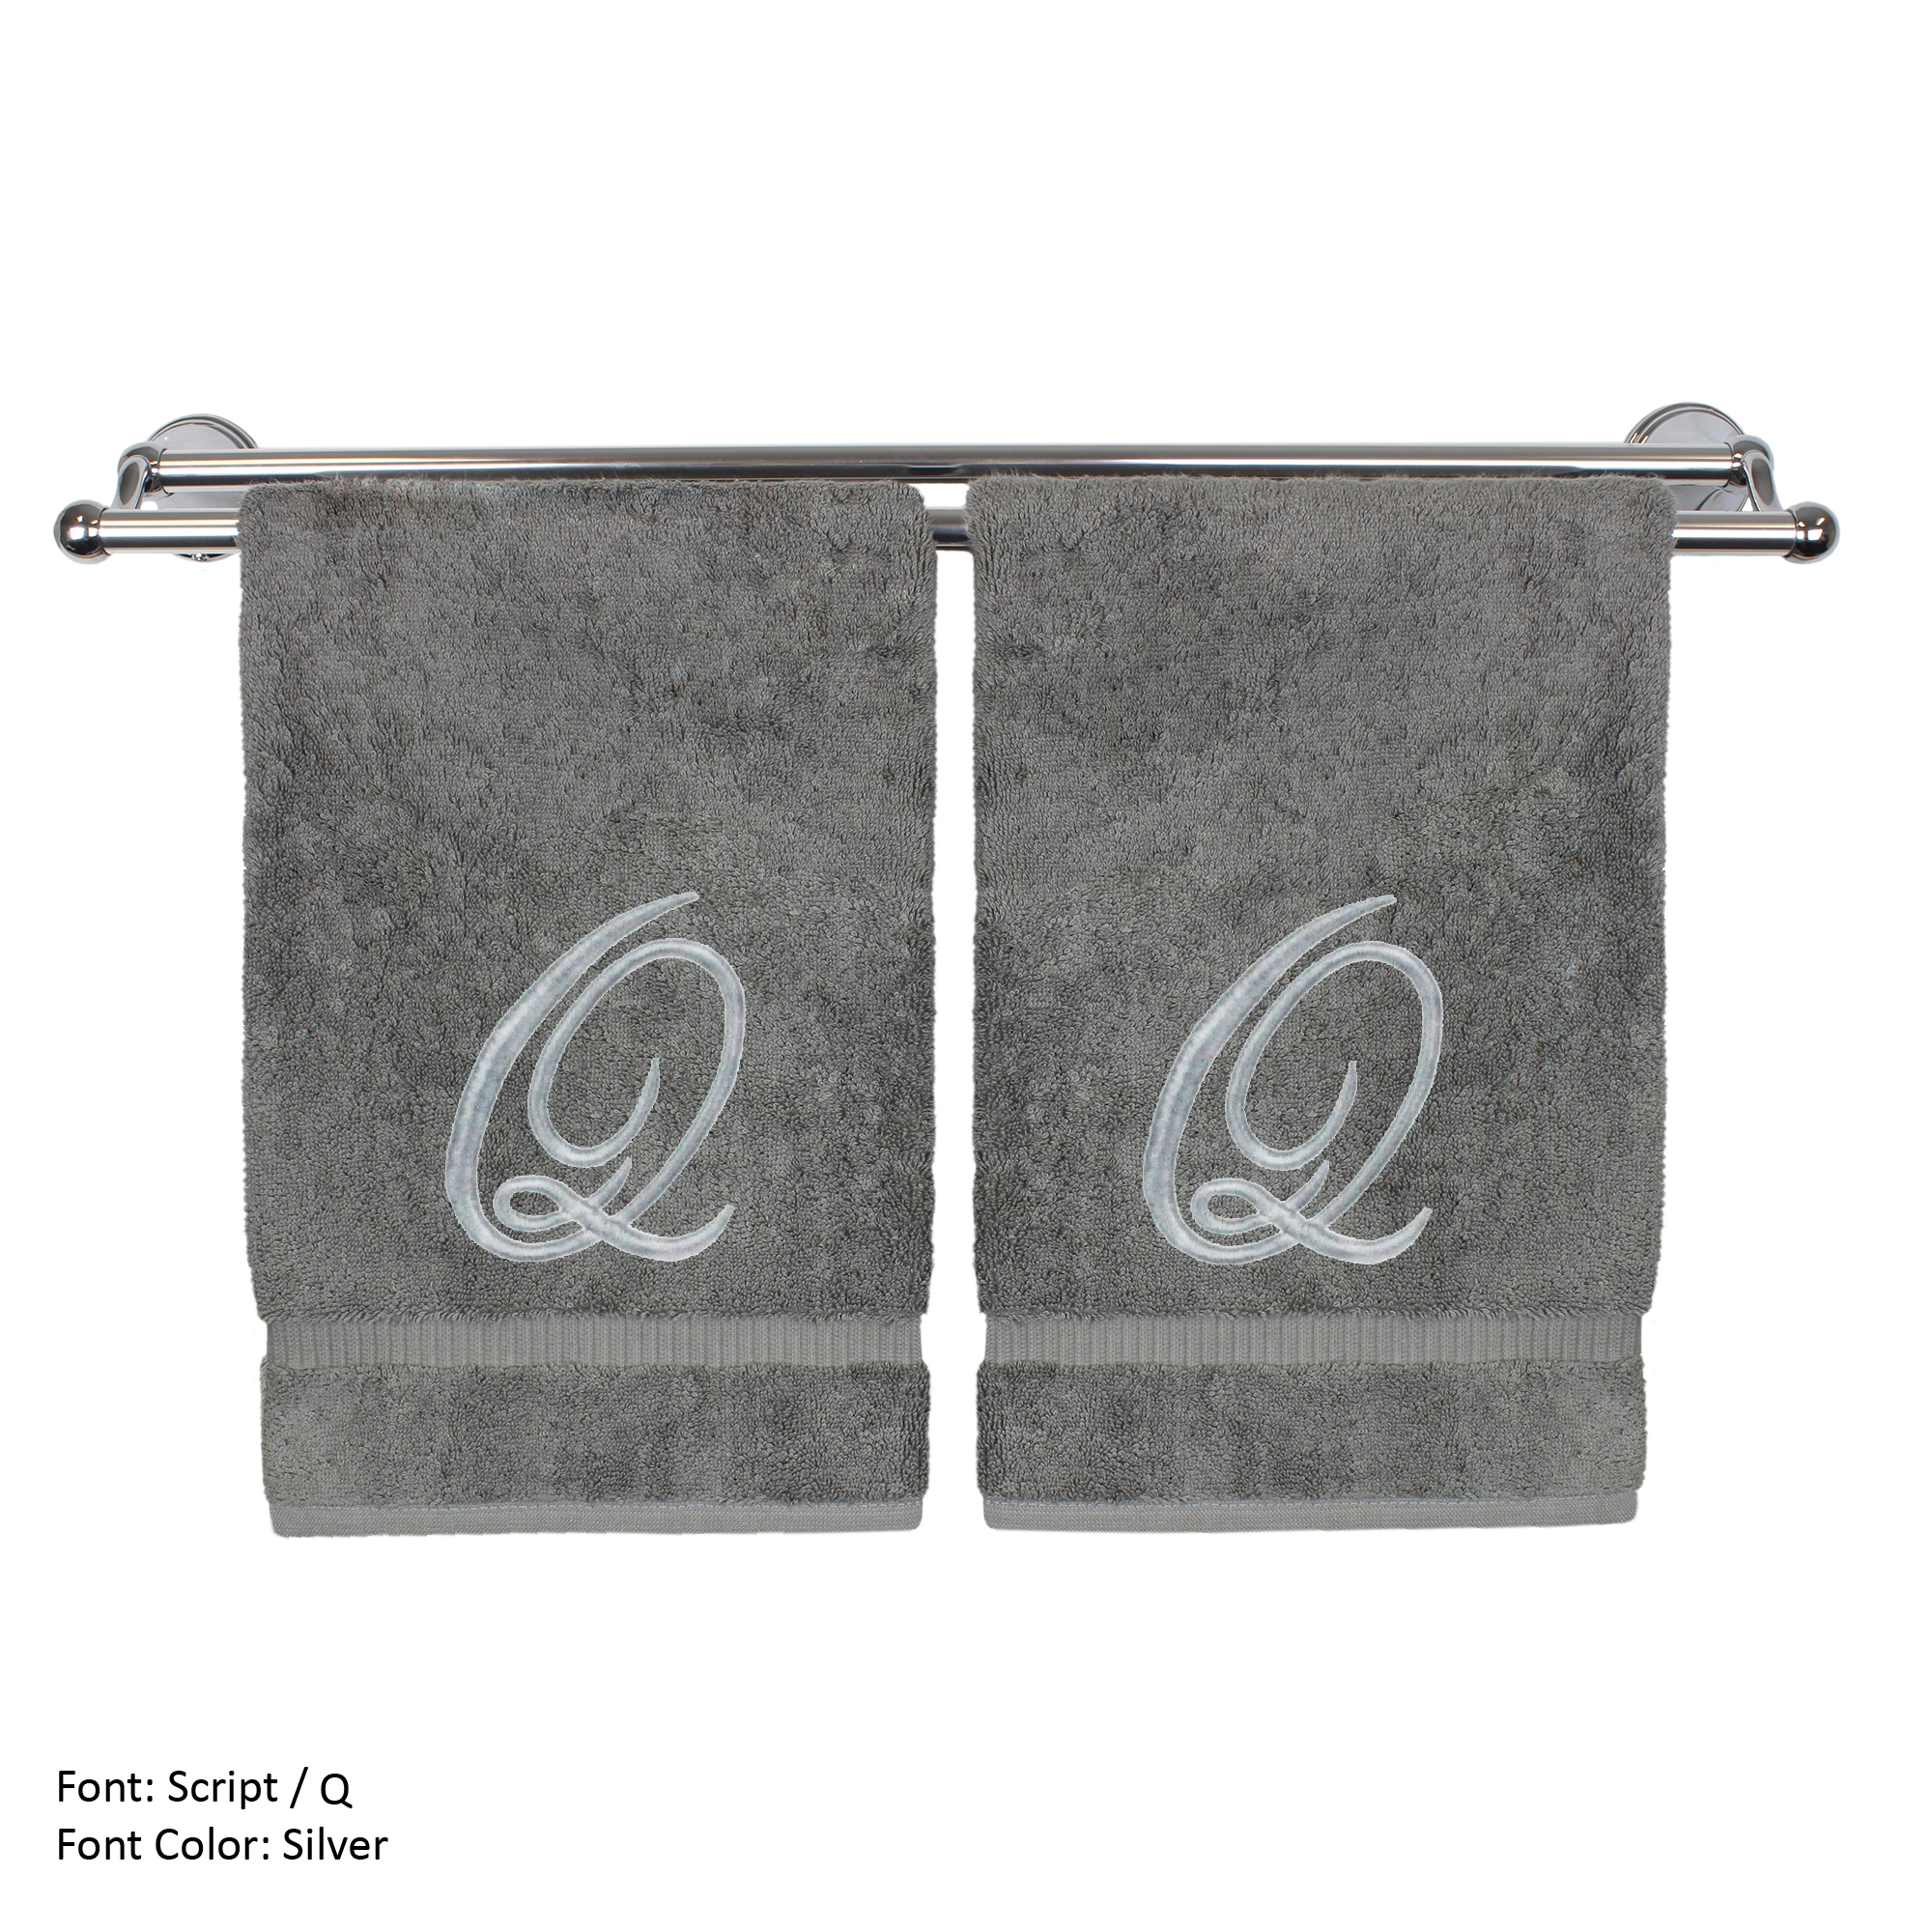 Monogrammed Washcloth Towel, Personalized Gift, 13x13 Inches - Set of 2 - Silver Script Embroidered Towel - Extra Absorbent 100% Turkish Cotton - Soft Terry Finish - Initial Q Gray